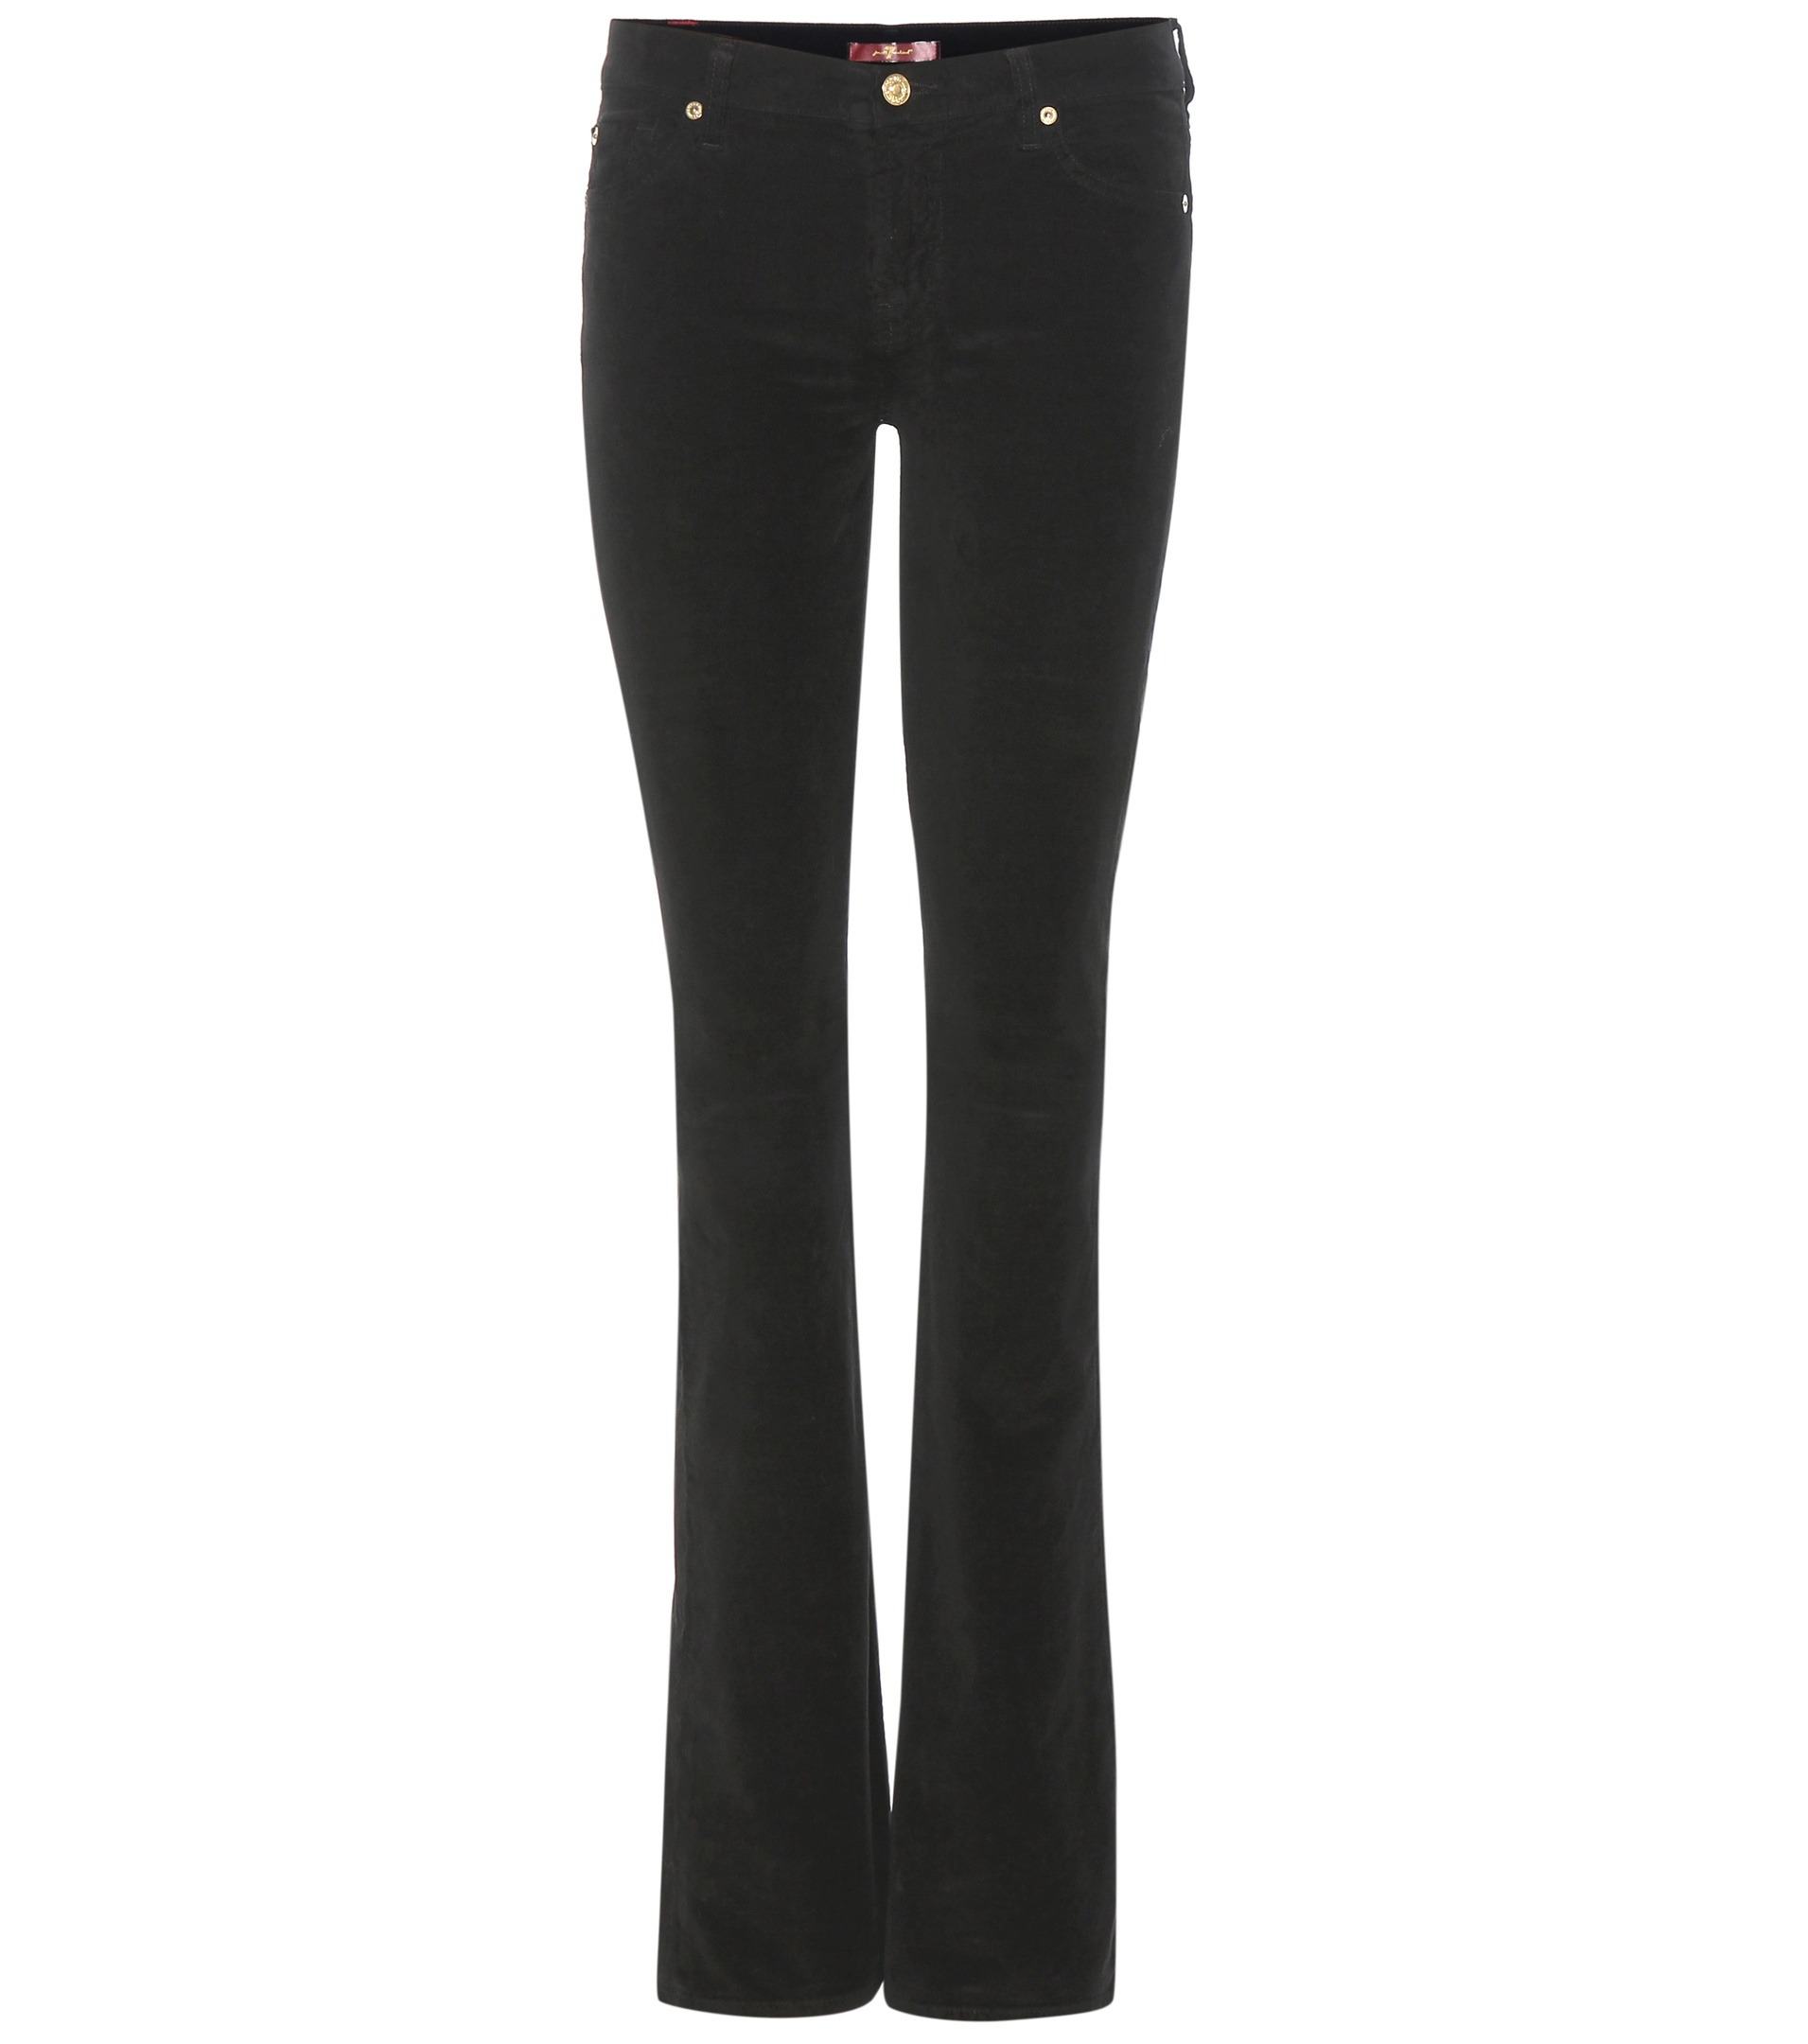 Bootcut black velvet trousers by 7 for all mankind color black